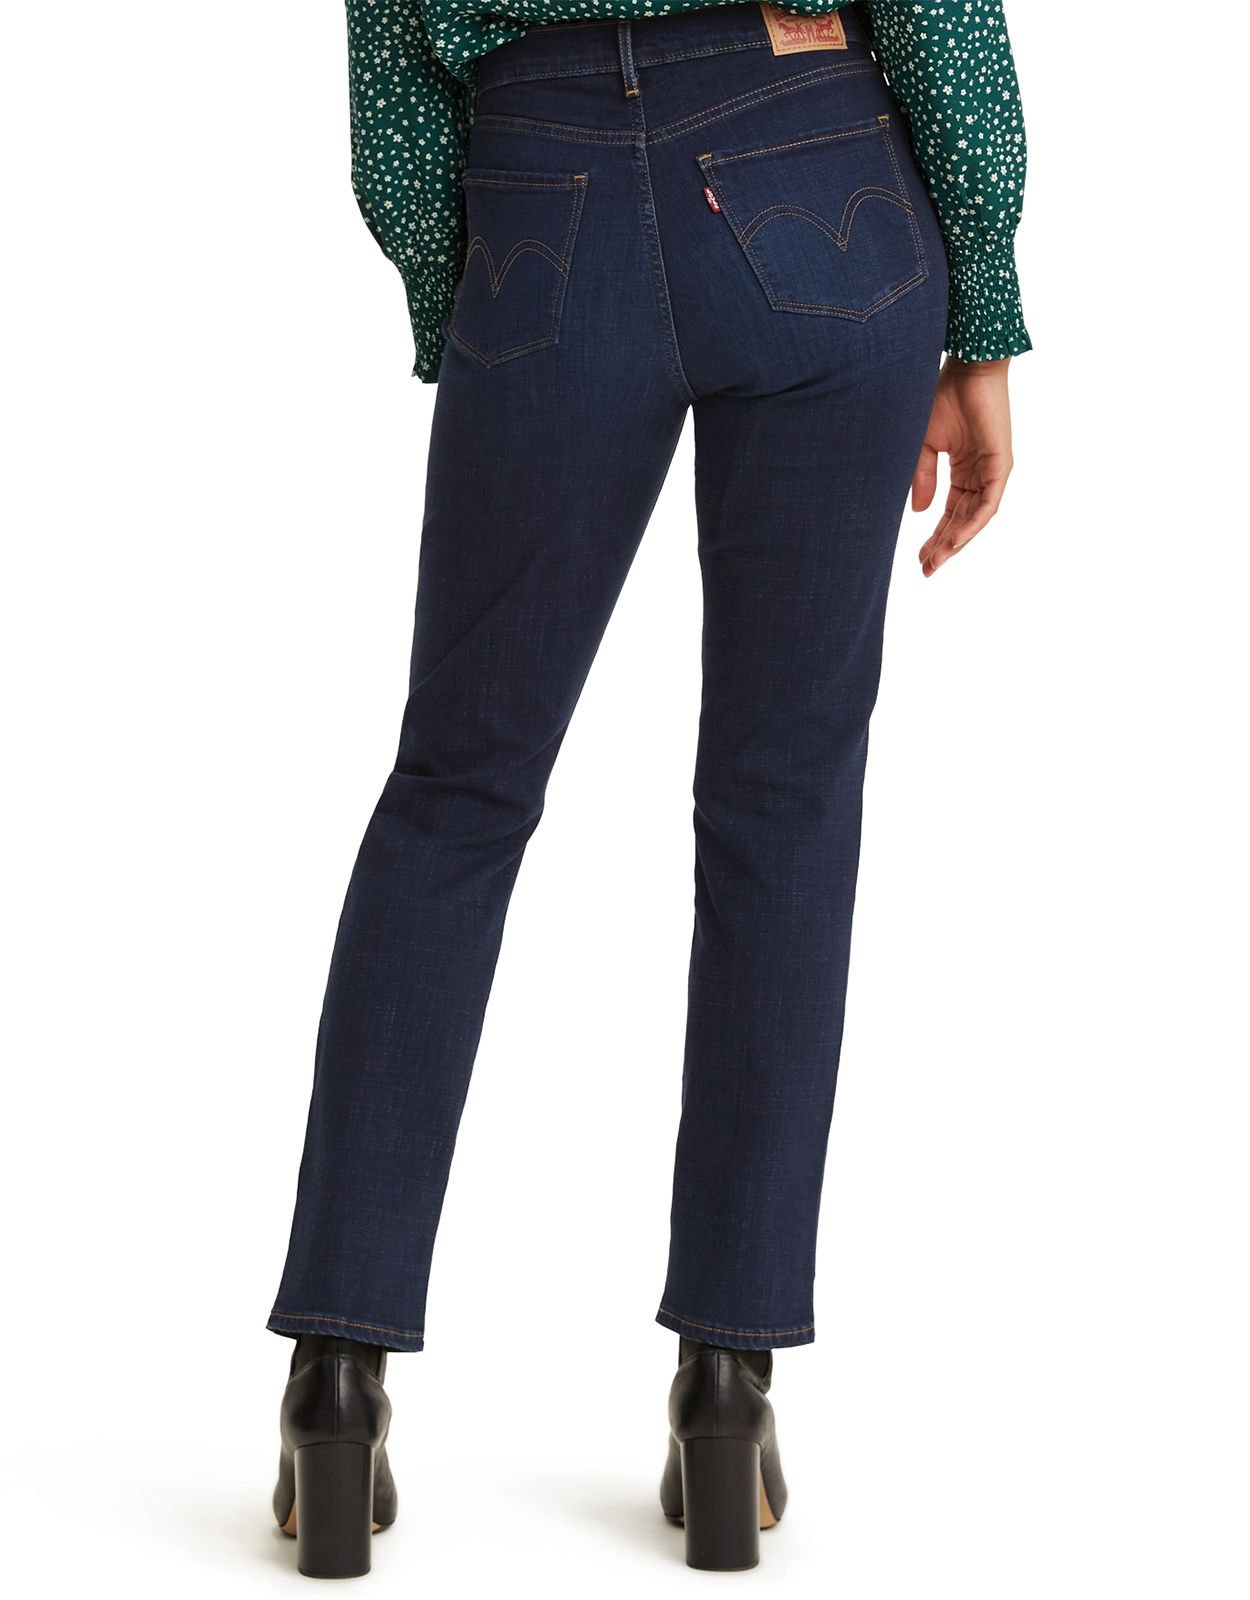 Levi's Women's Classic Straight Stretch Mid Rise Easy Fit Straight Leg Jeans - Cobalt Haze